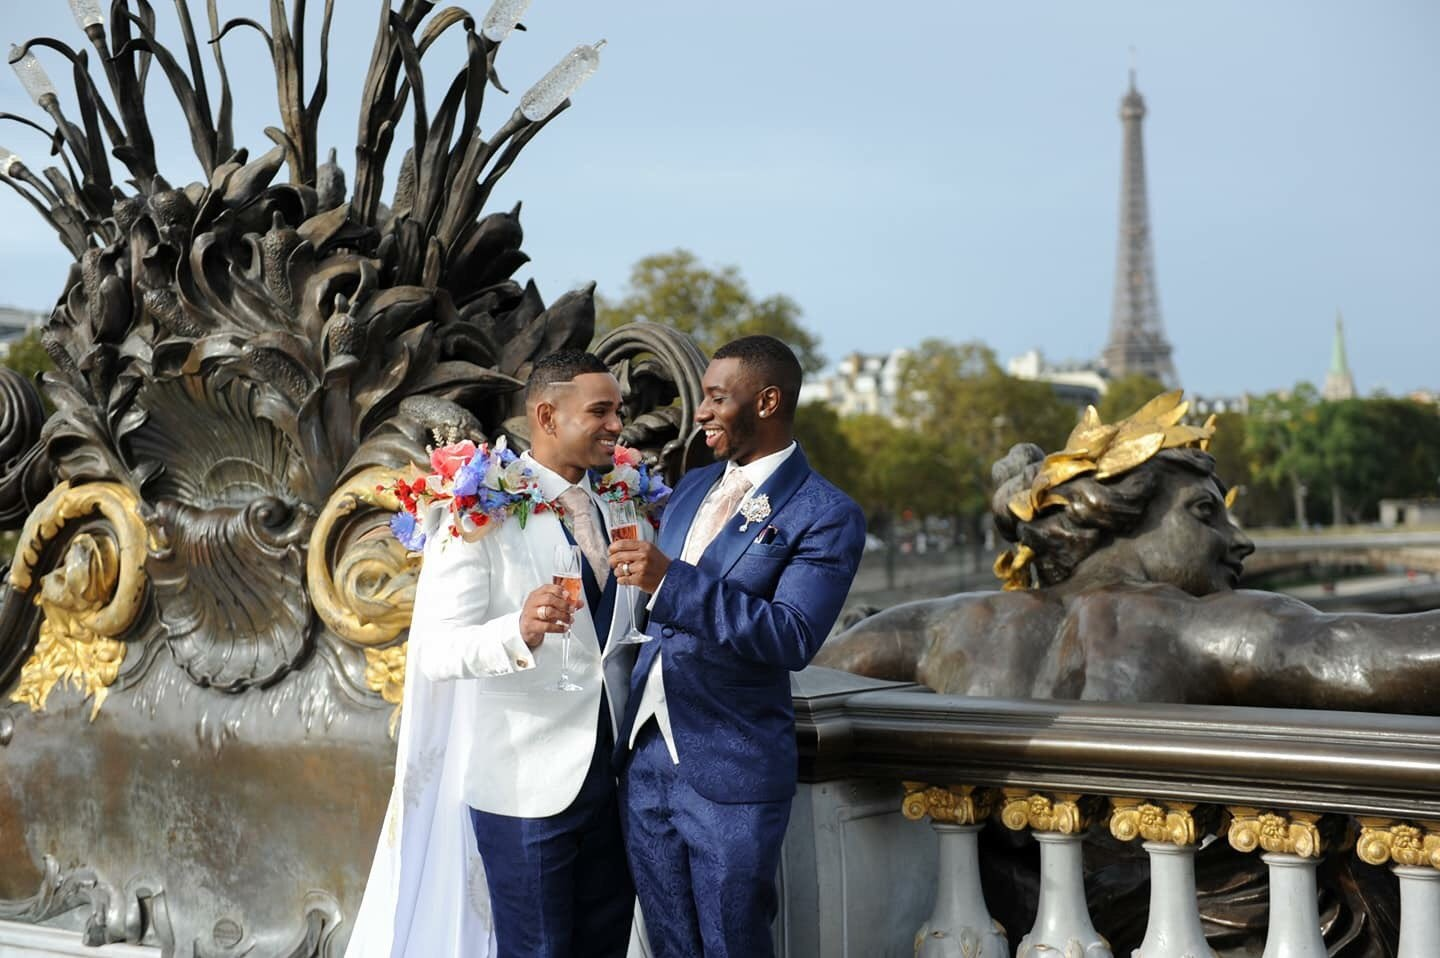 Check out interesting photos from a Paris gay wedding